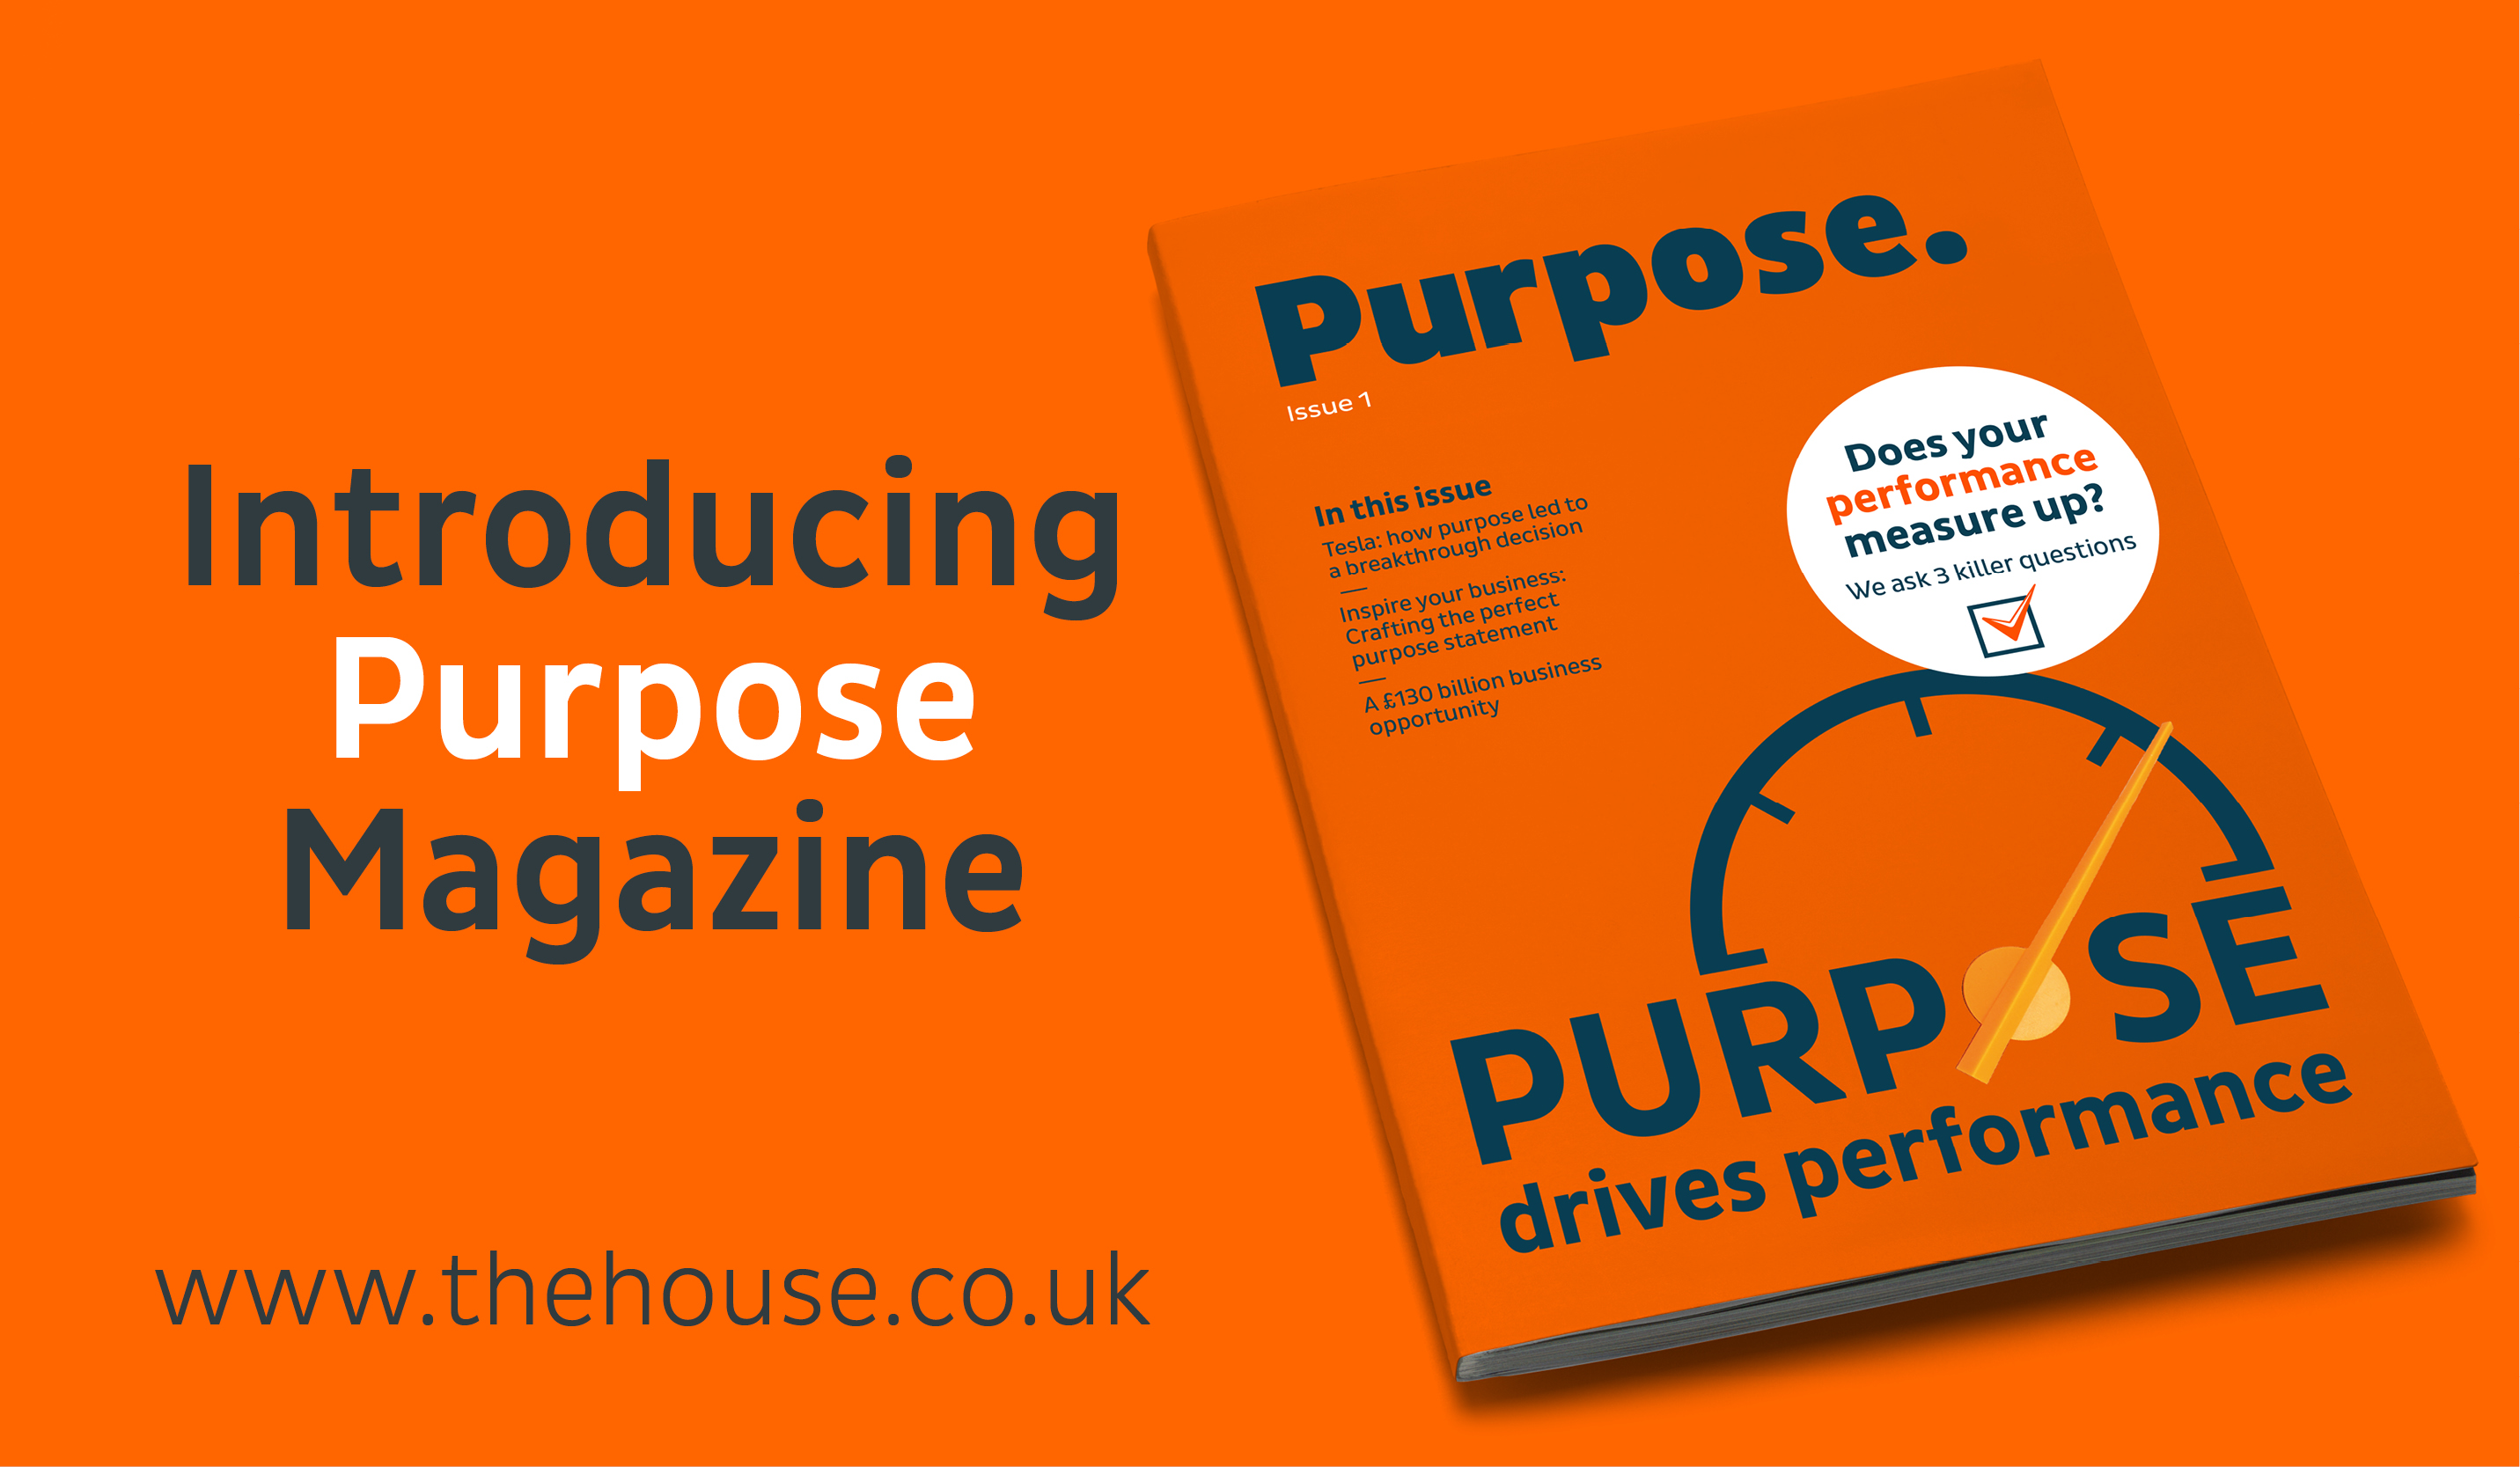 Introducing Purpose Magazine